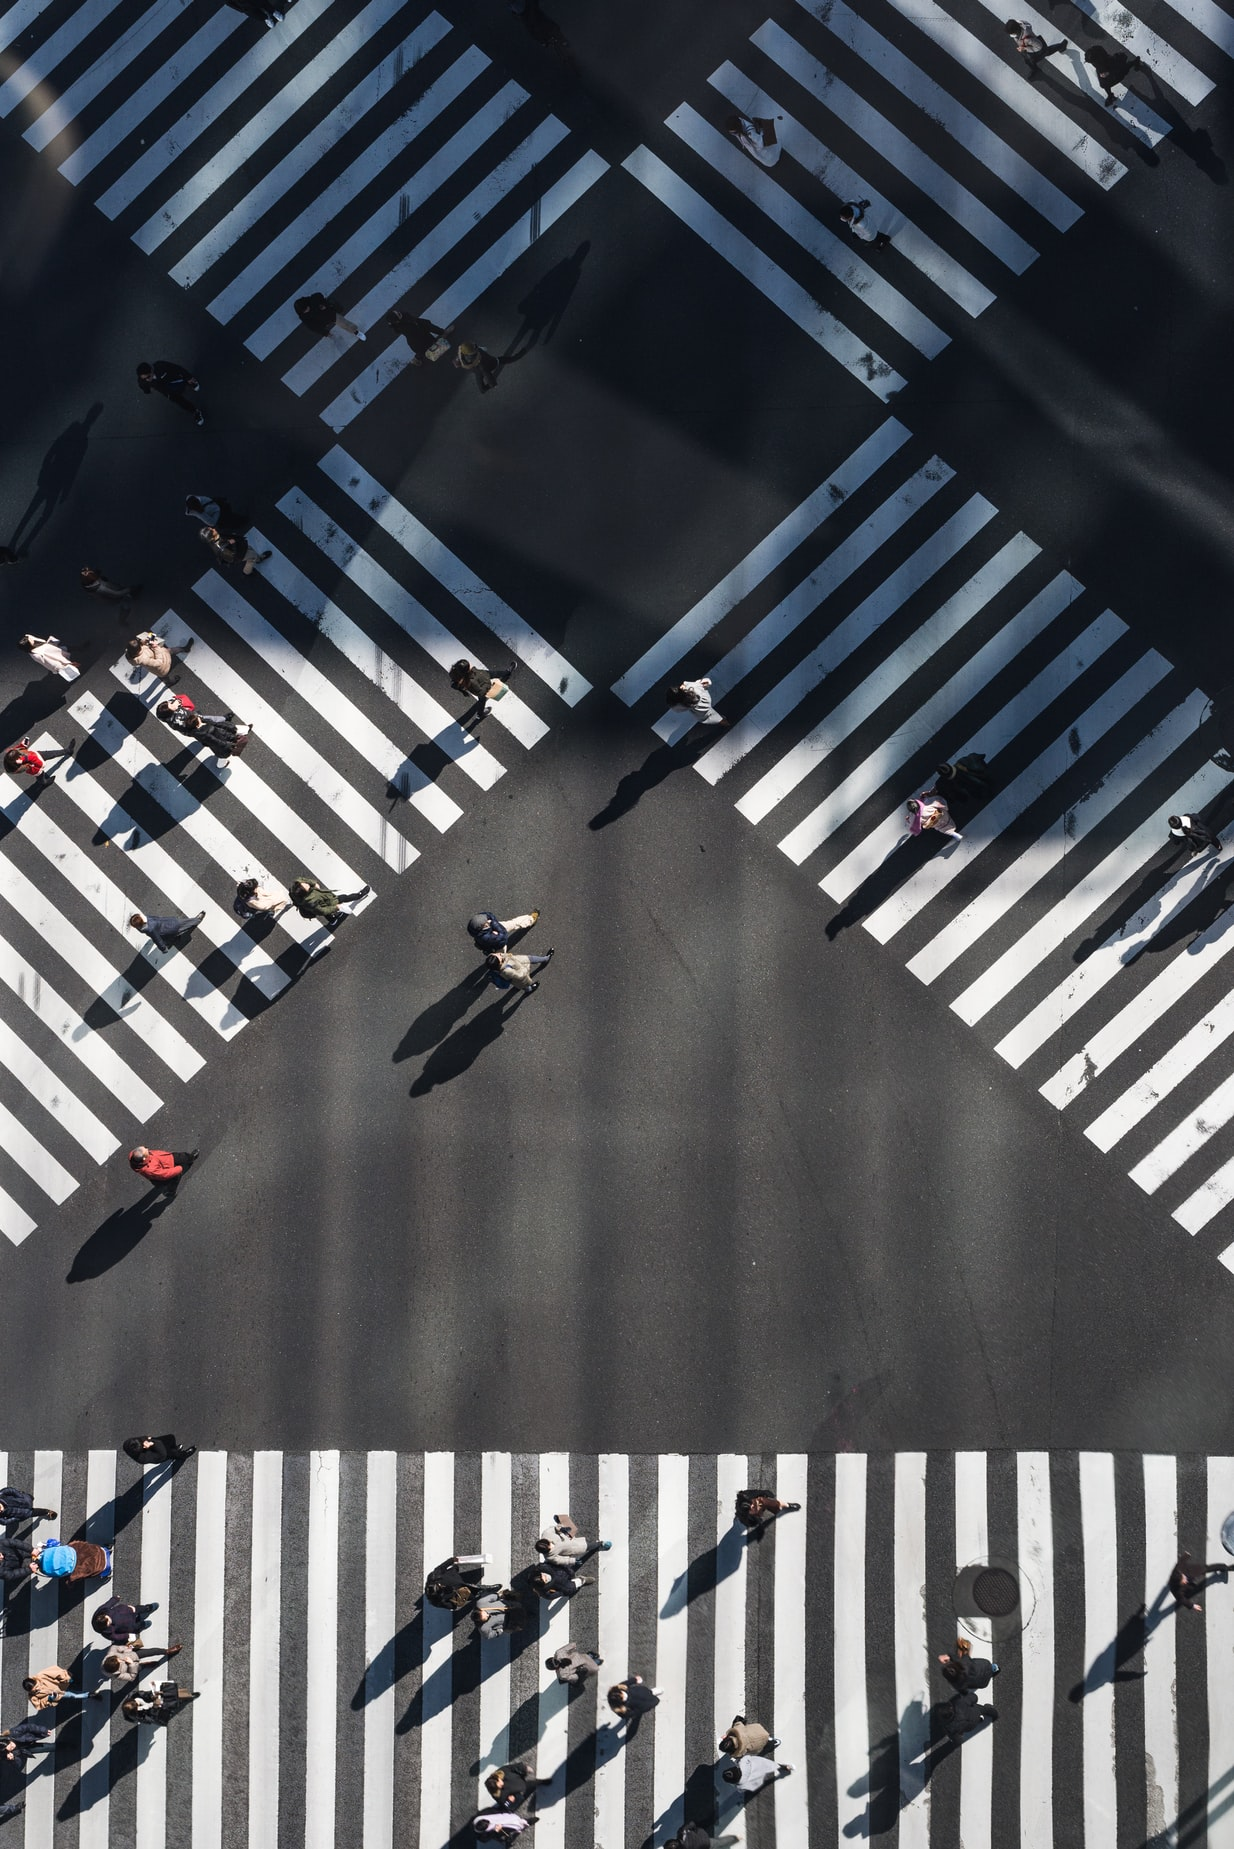 big-pedestrian-crossing